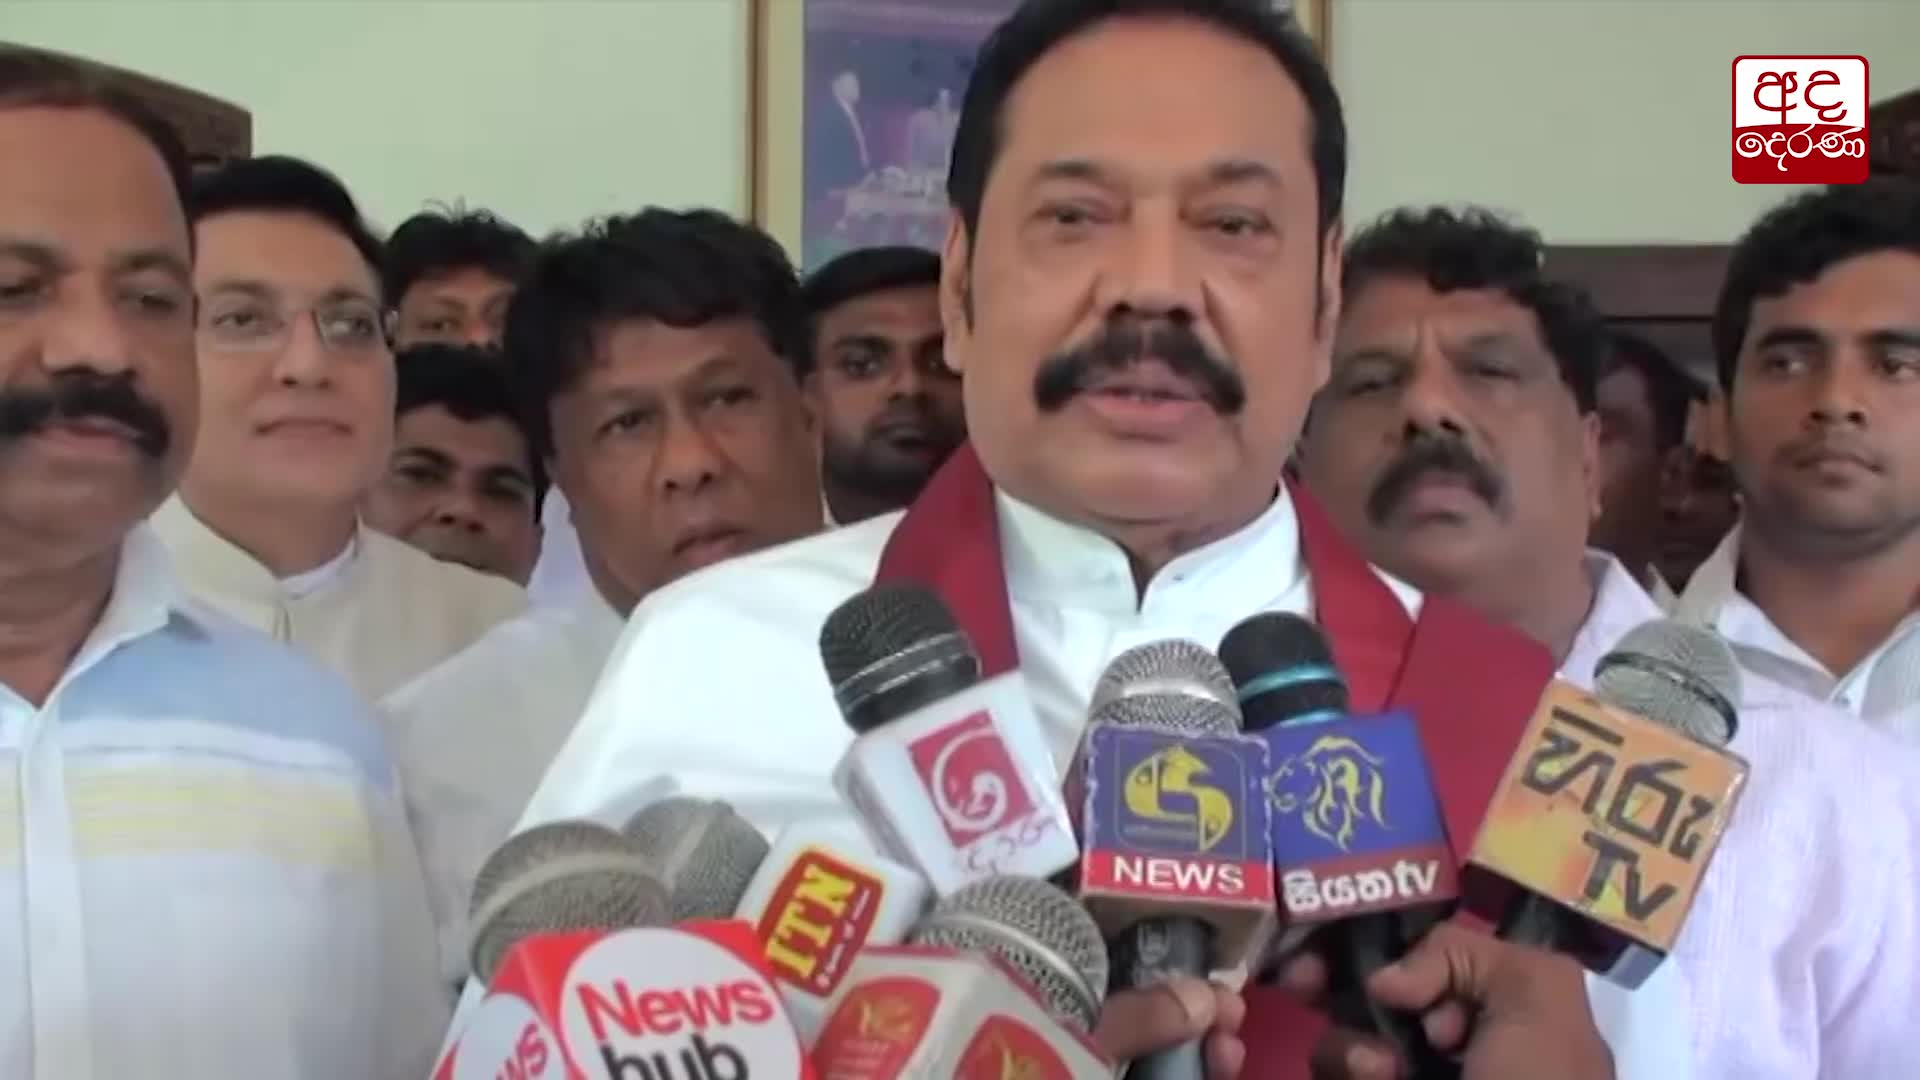 MPs and ministers using Cocaine should be called out - Mahinda